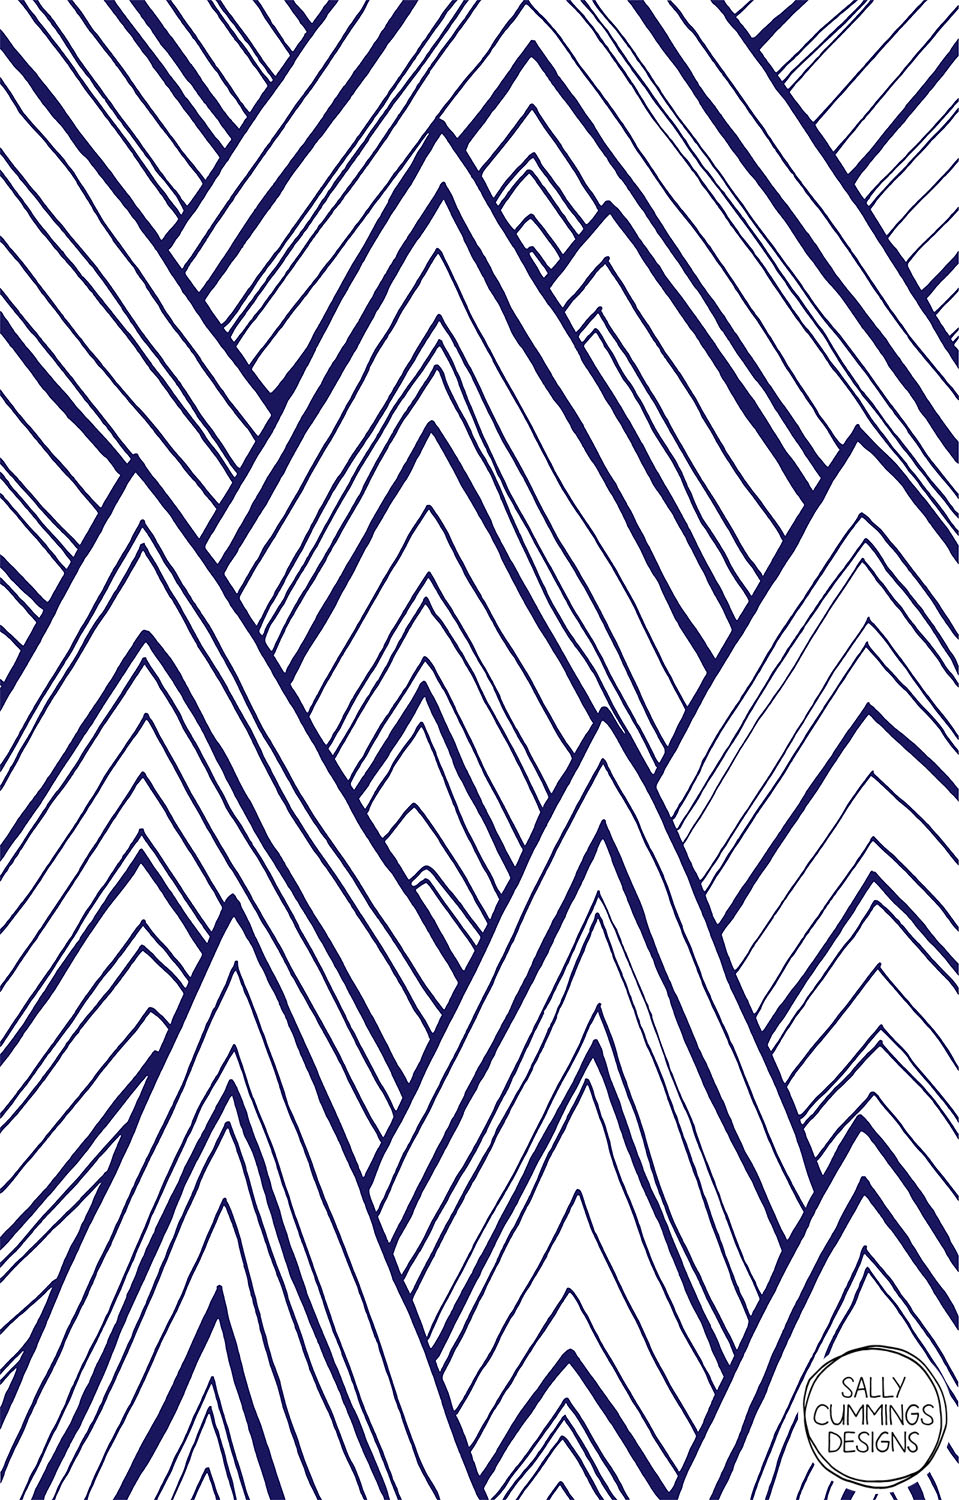 Sally Cummings Designs - Stripe Mountains (Dark Blue)